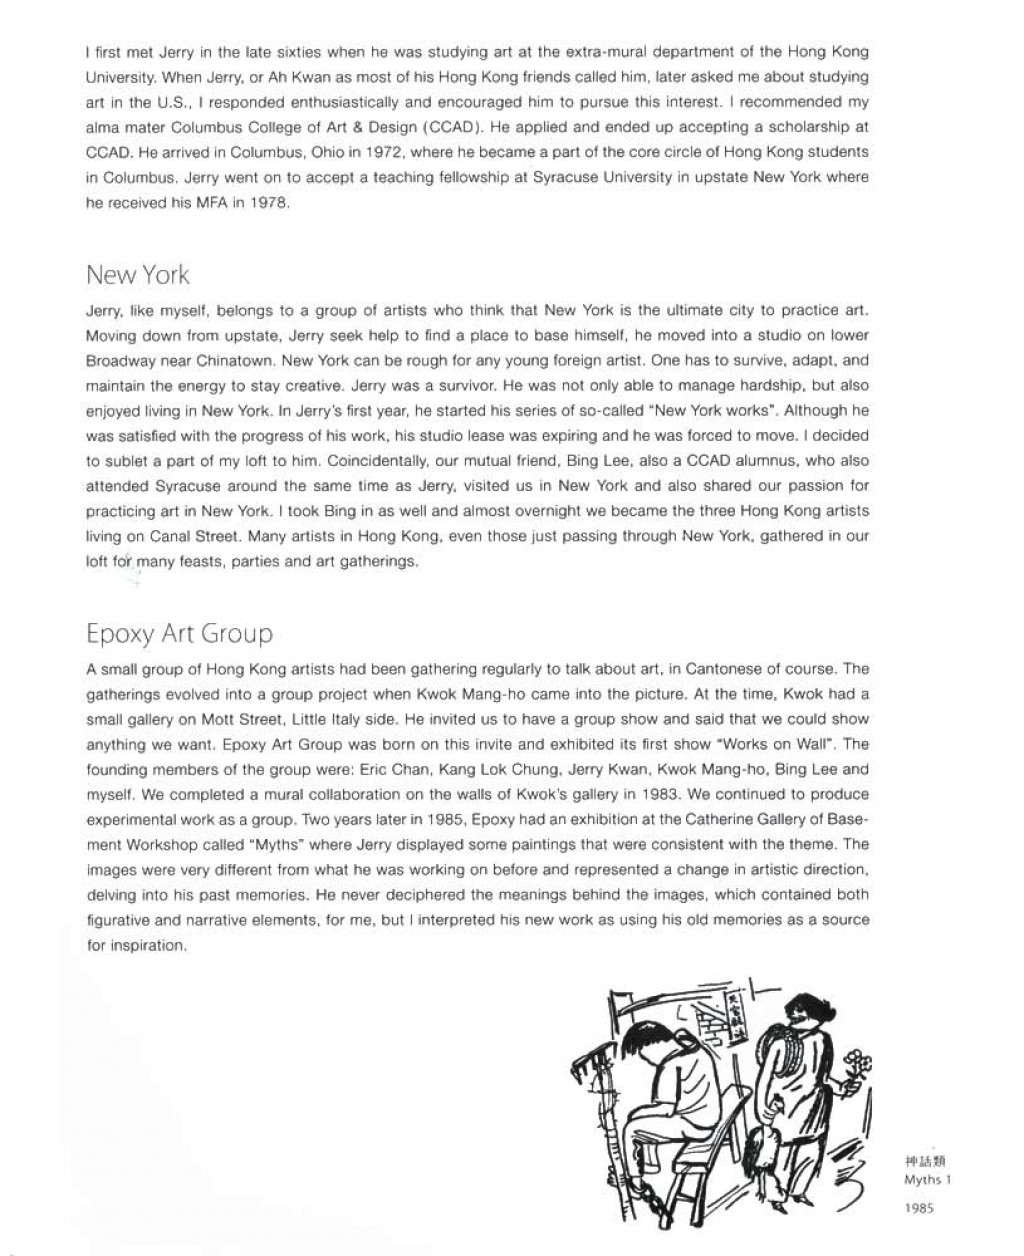 009 The Art Of Personal Essay My Friend Jerry Kwan Pg 2 Beautiful Pdf Download Table Contents Large